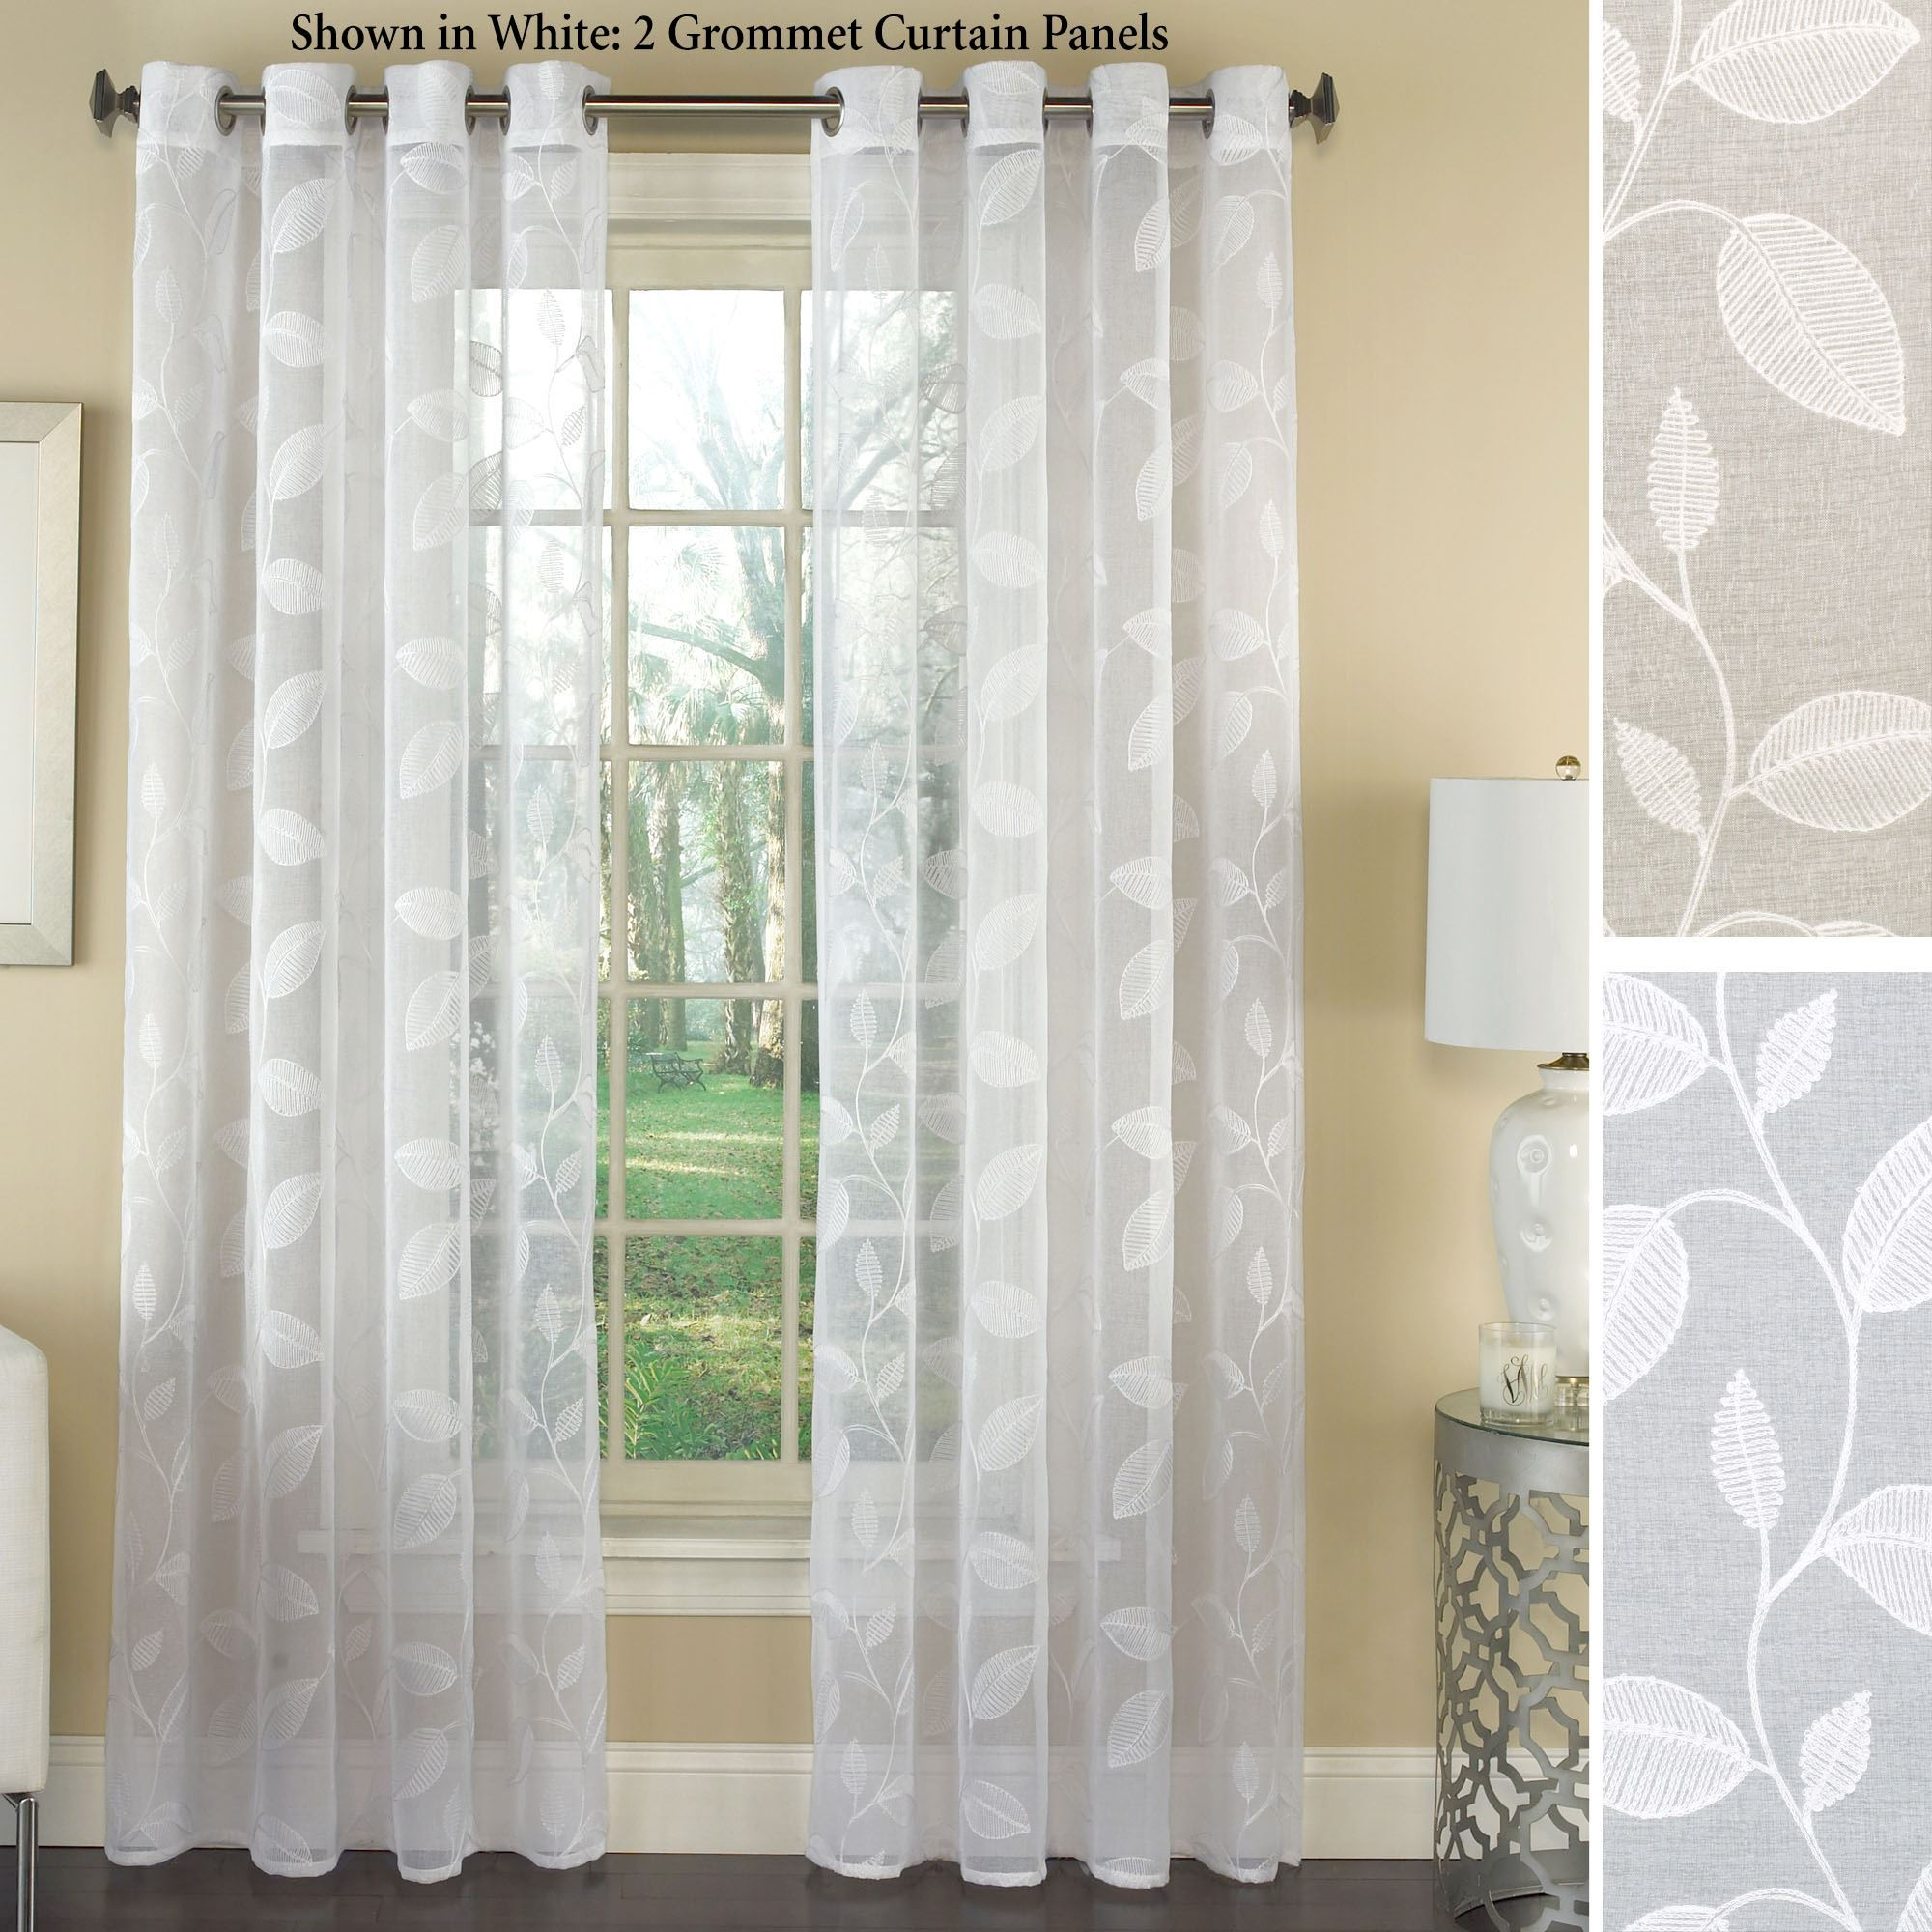 Avery Semi Sheer Embroidered Grommet Curtain Panels pertaining to Grommet Curtain Panels (Image 1 of 20)